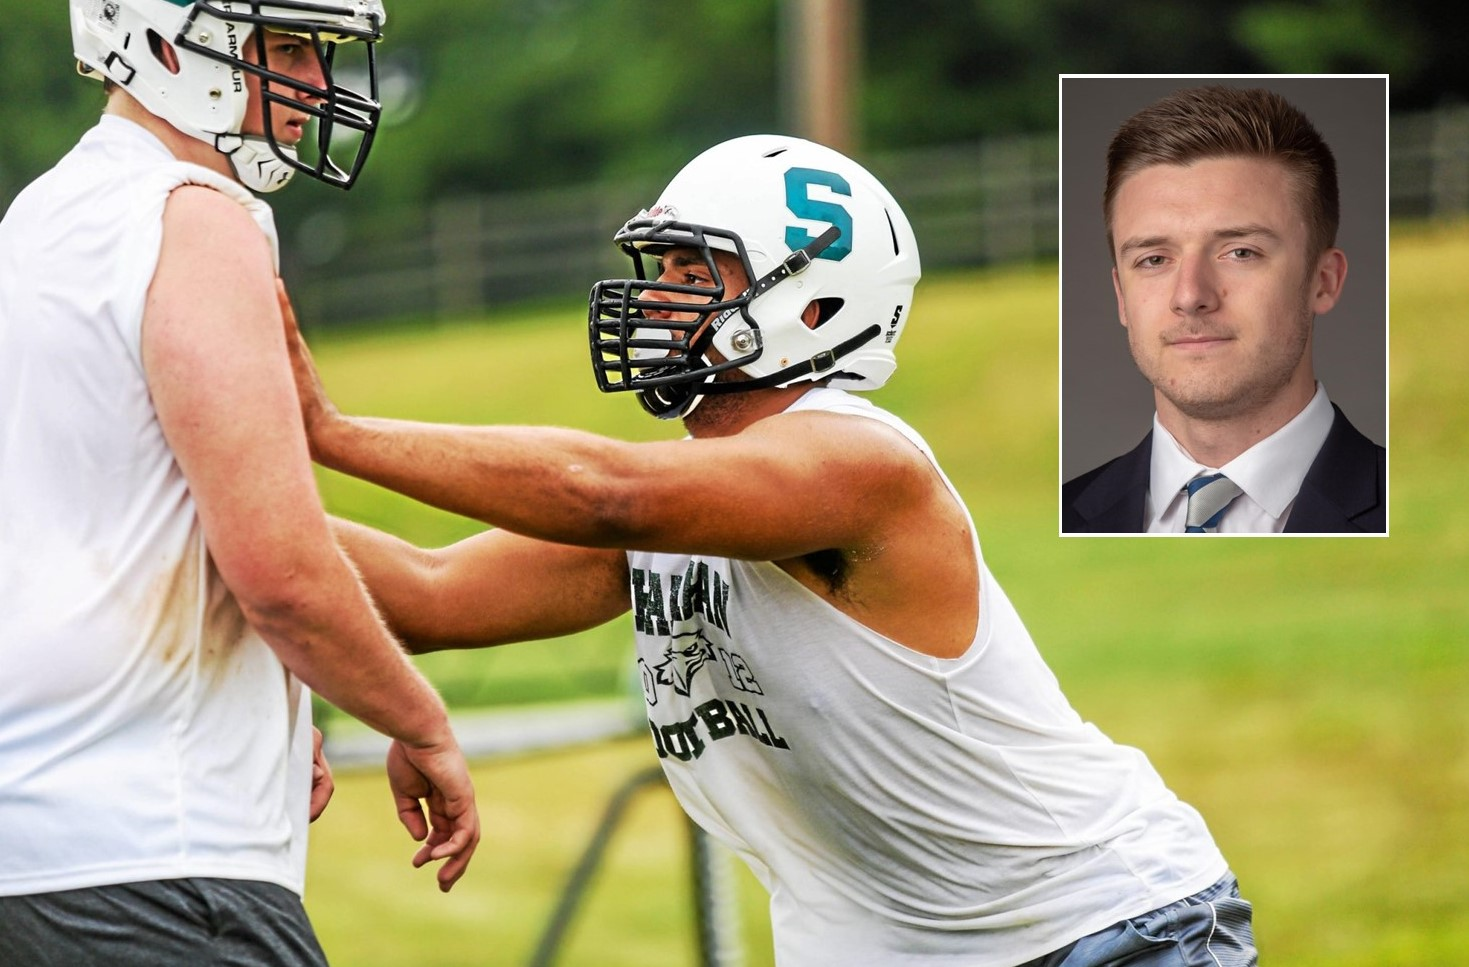 After Going Undrafted, Two Locals Sign Free-Agent Contracts, Hoping to Make an NFL Roster